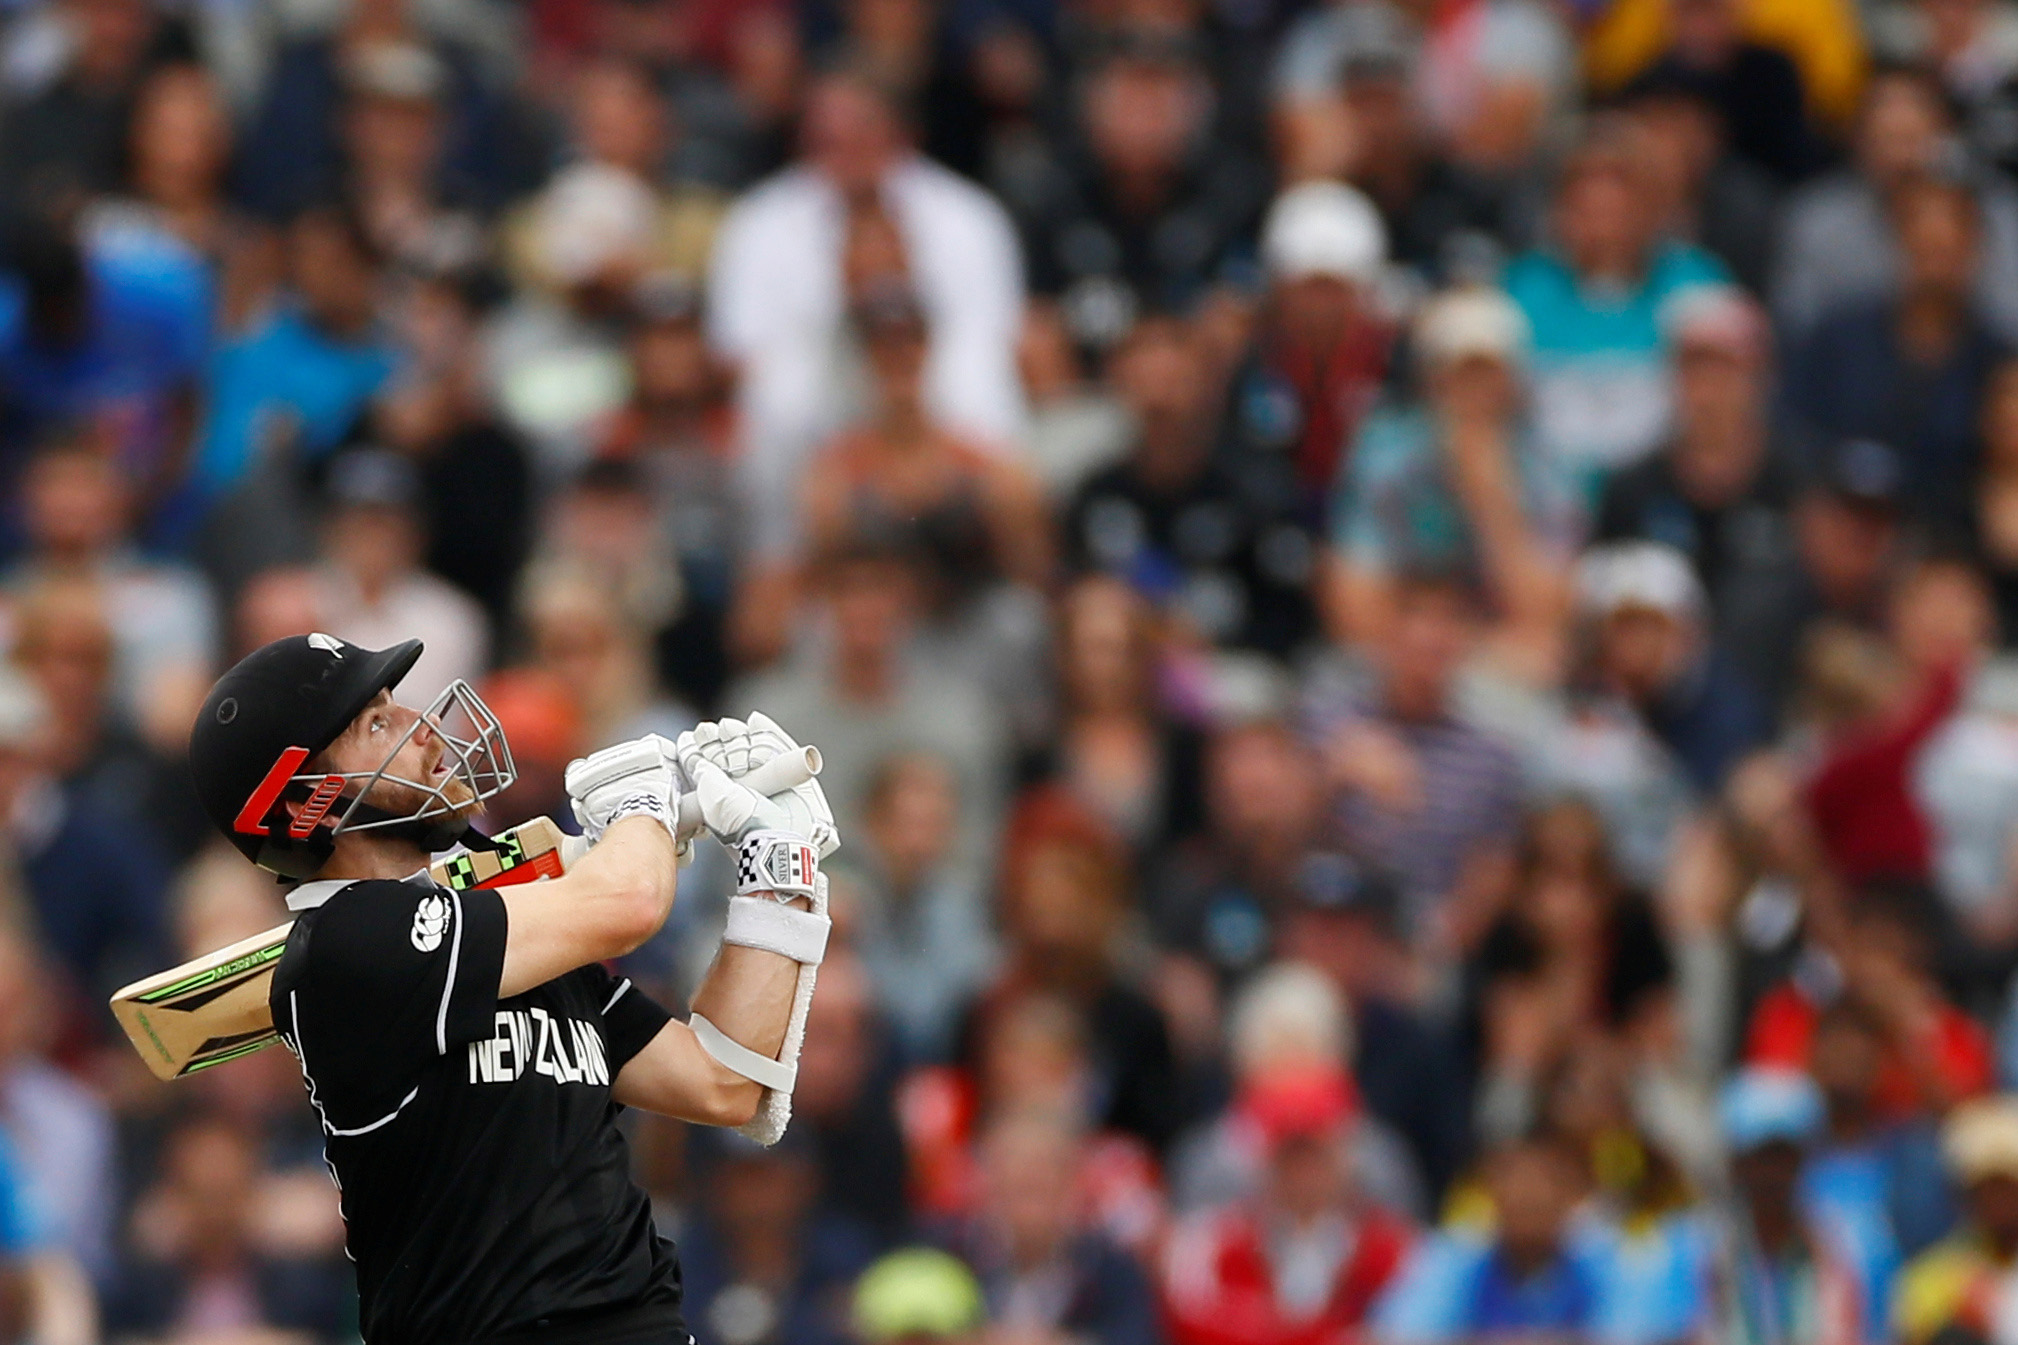 9 July 2019: New Zealand captain Kane Williamson whips the ball away for another boundary during the Black Caps' win against India in the Cricket World Cup semifinal at Old Trafford. (Photograph by Action Images via Reuters/Jason Cairnduff)